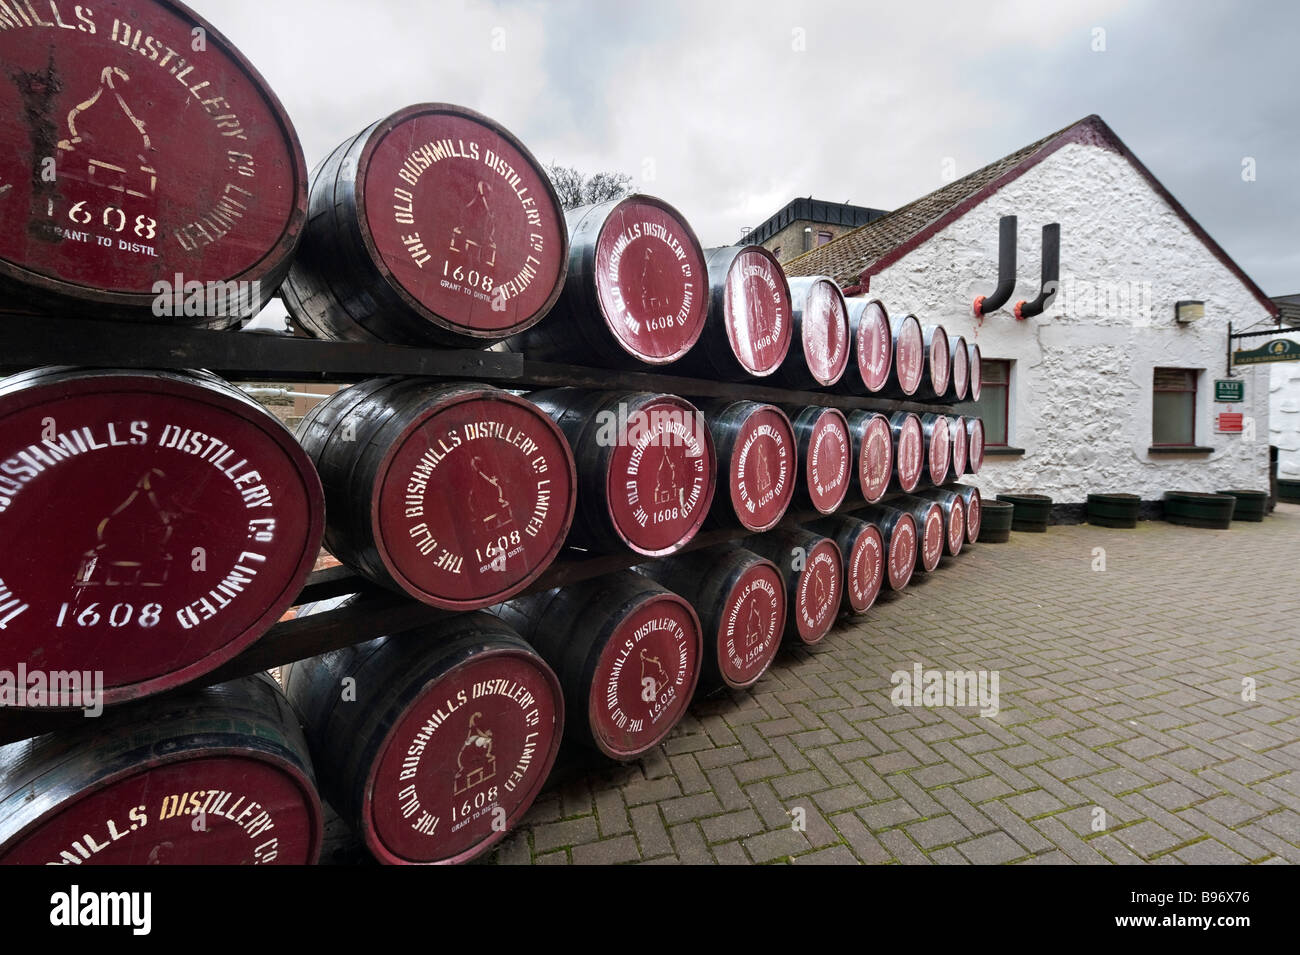 Whiskey barrels at the Old Bushmills Distillery, Bushmills, County Antrim, Northern Ireland - Stock Image